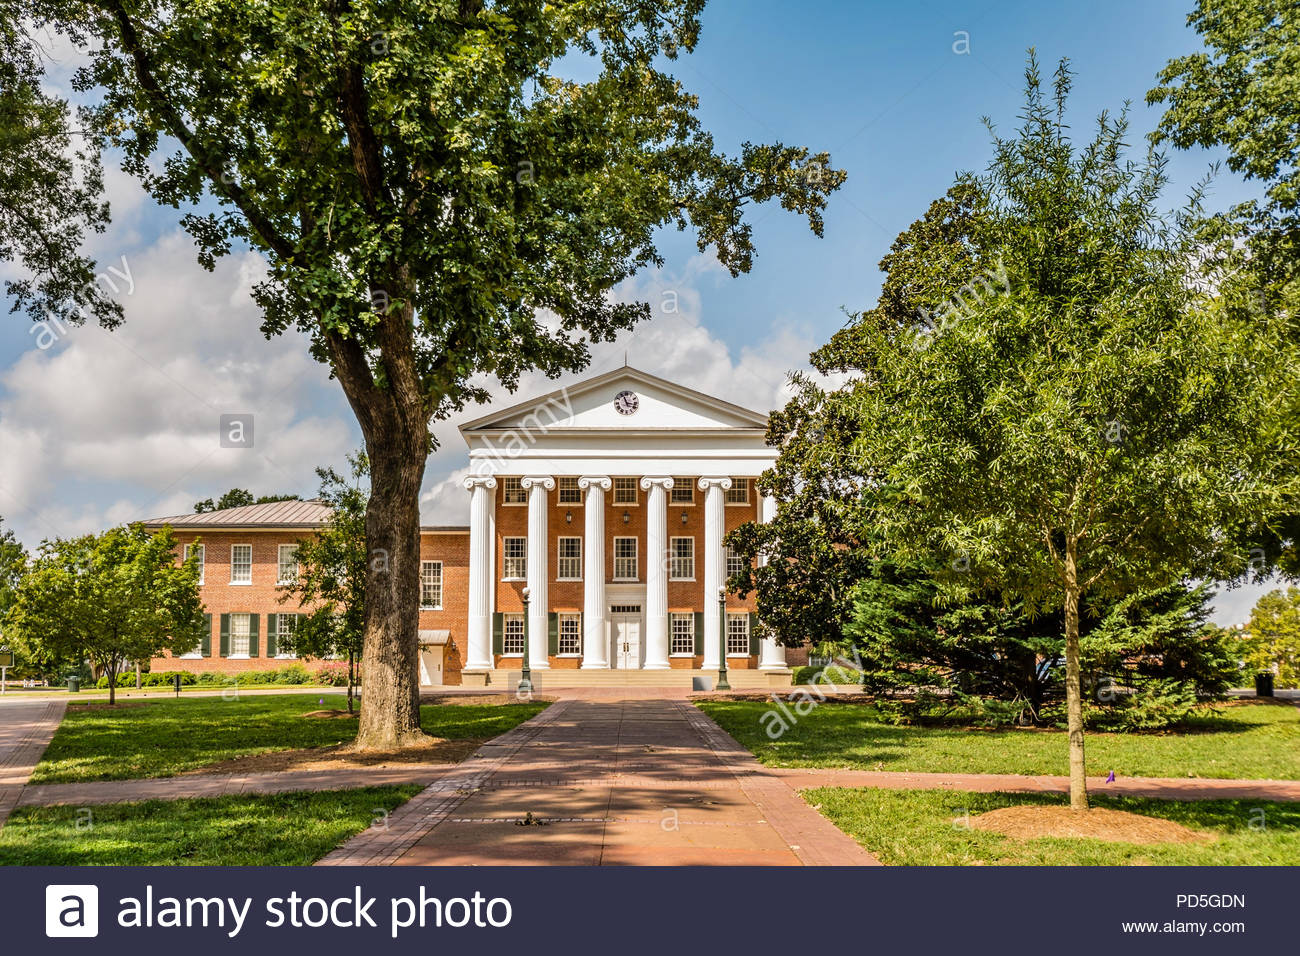 The Lyceum building at the University of Mississippi, Ole Miss, completed in 1848 and used as a hospital during the United States Civil War in Oxford. - Stock Image